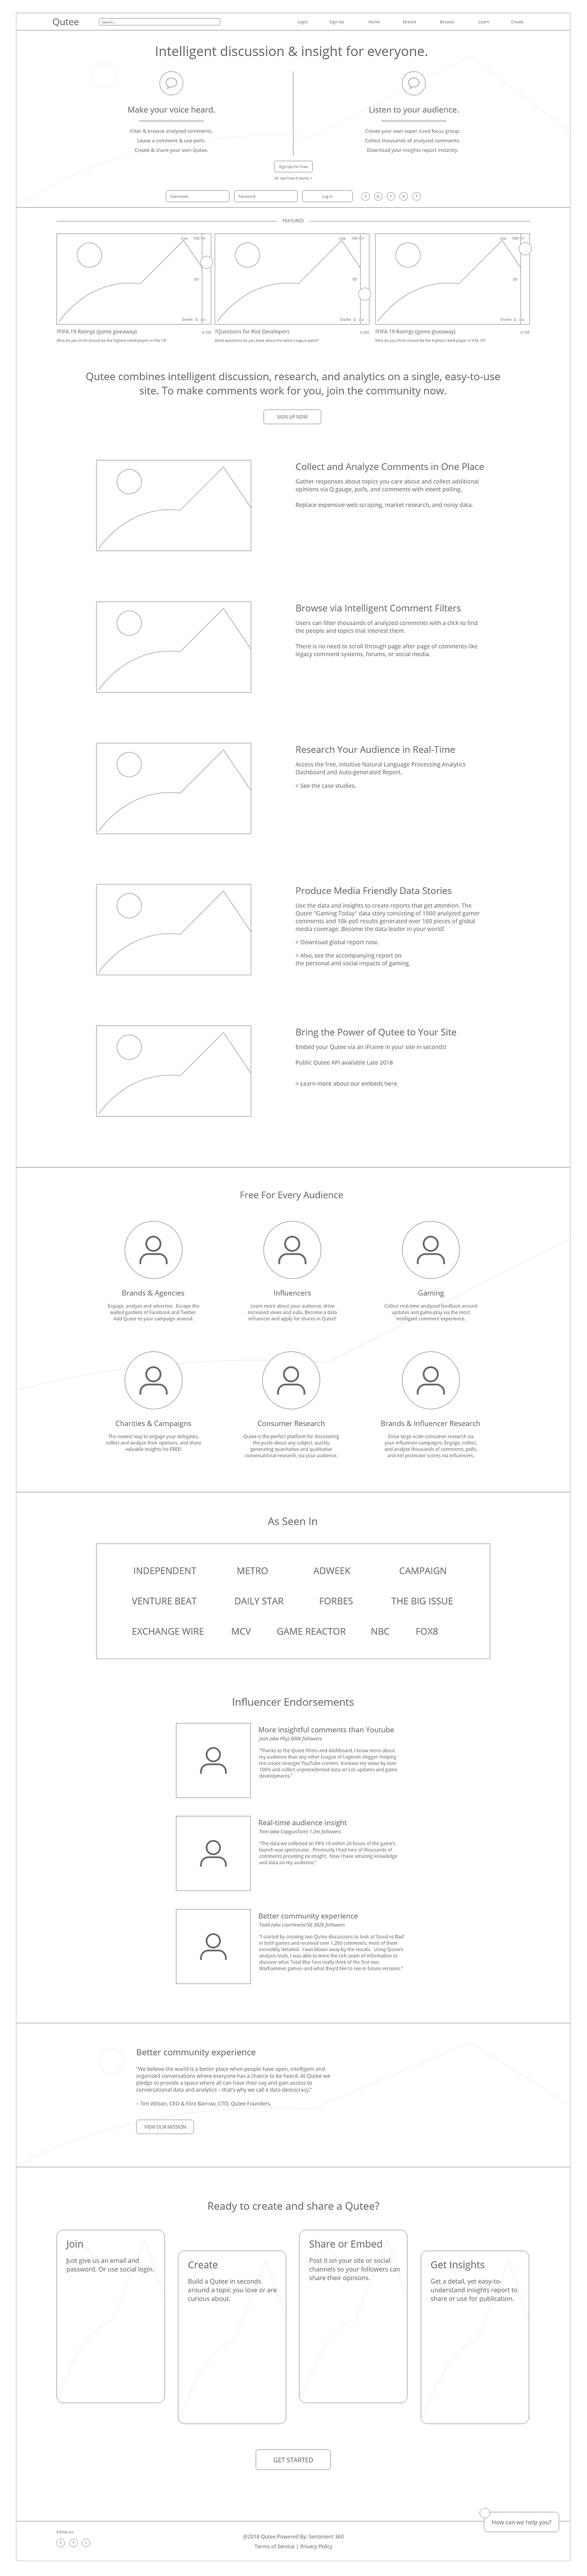 Qutee_homepage_wireframes-min (1).png